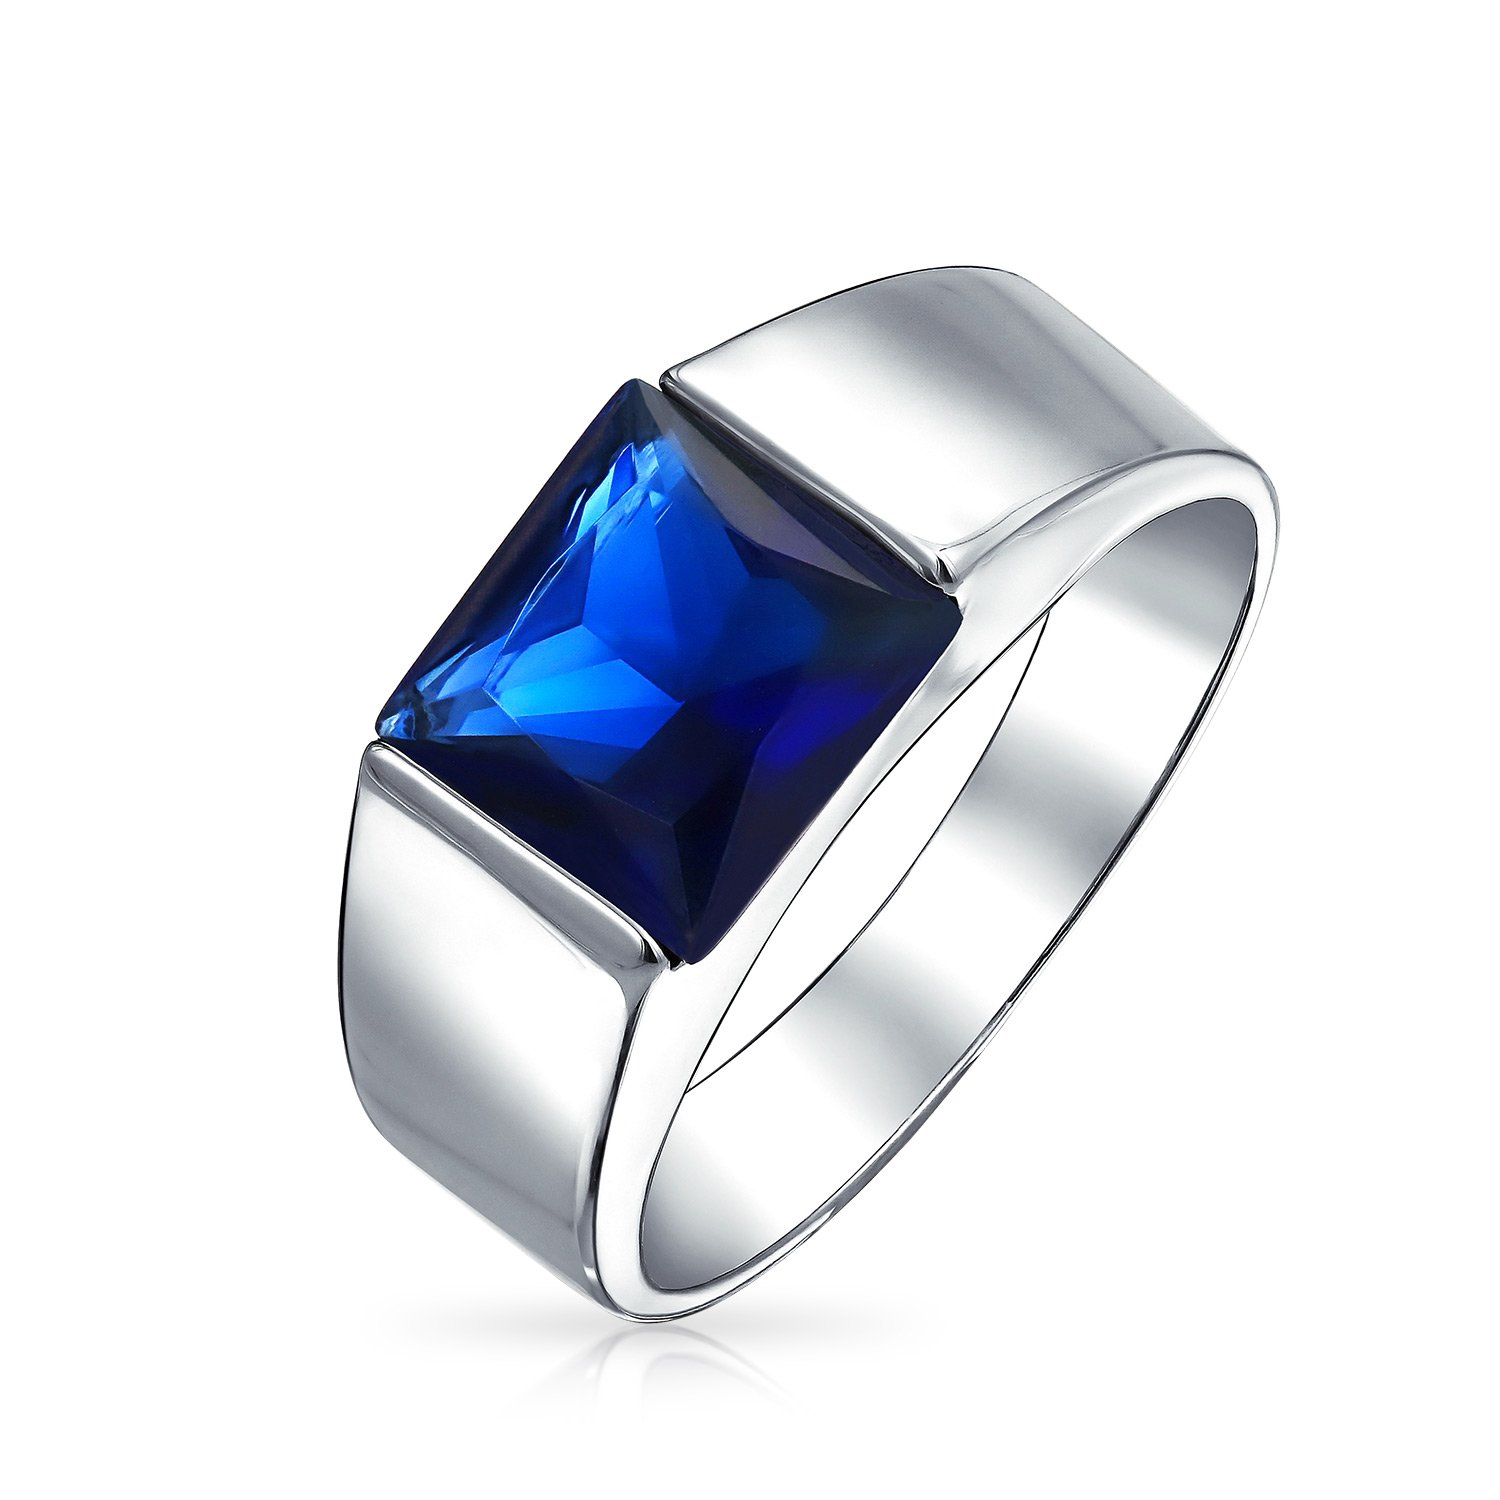 Bling Jewelry Simulated Sapphire Engagement Ring for Men Rhodium Plated MY-BMR-60229BL